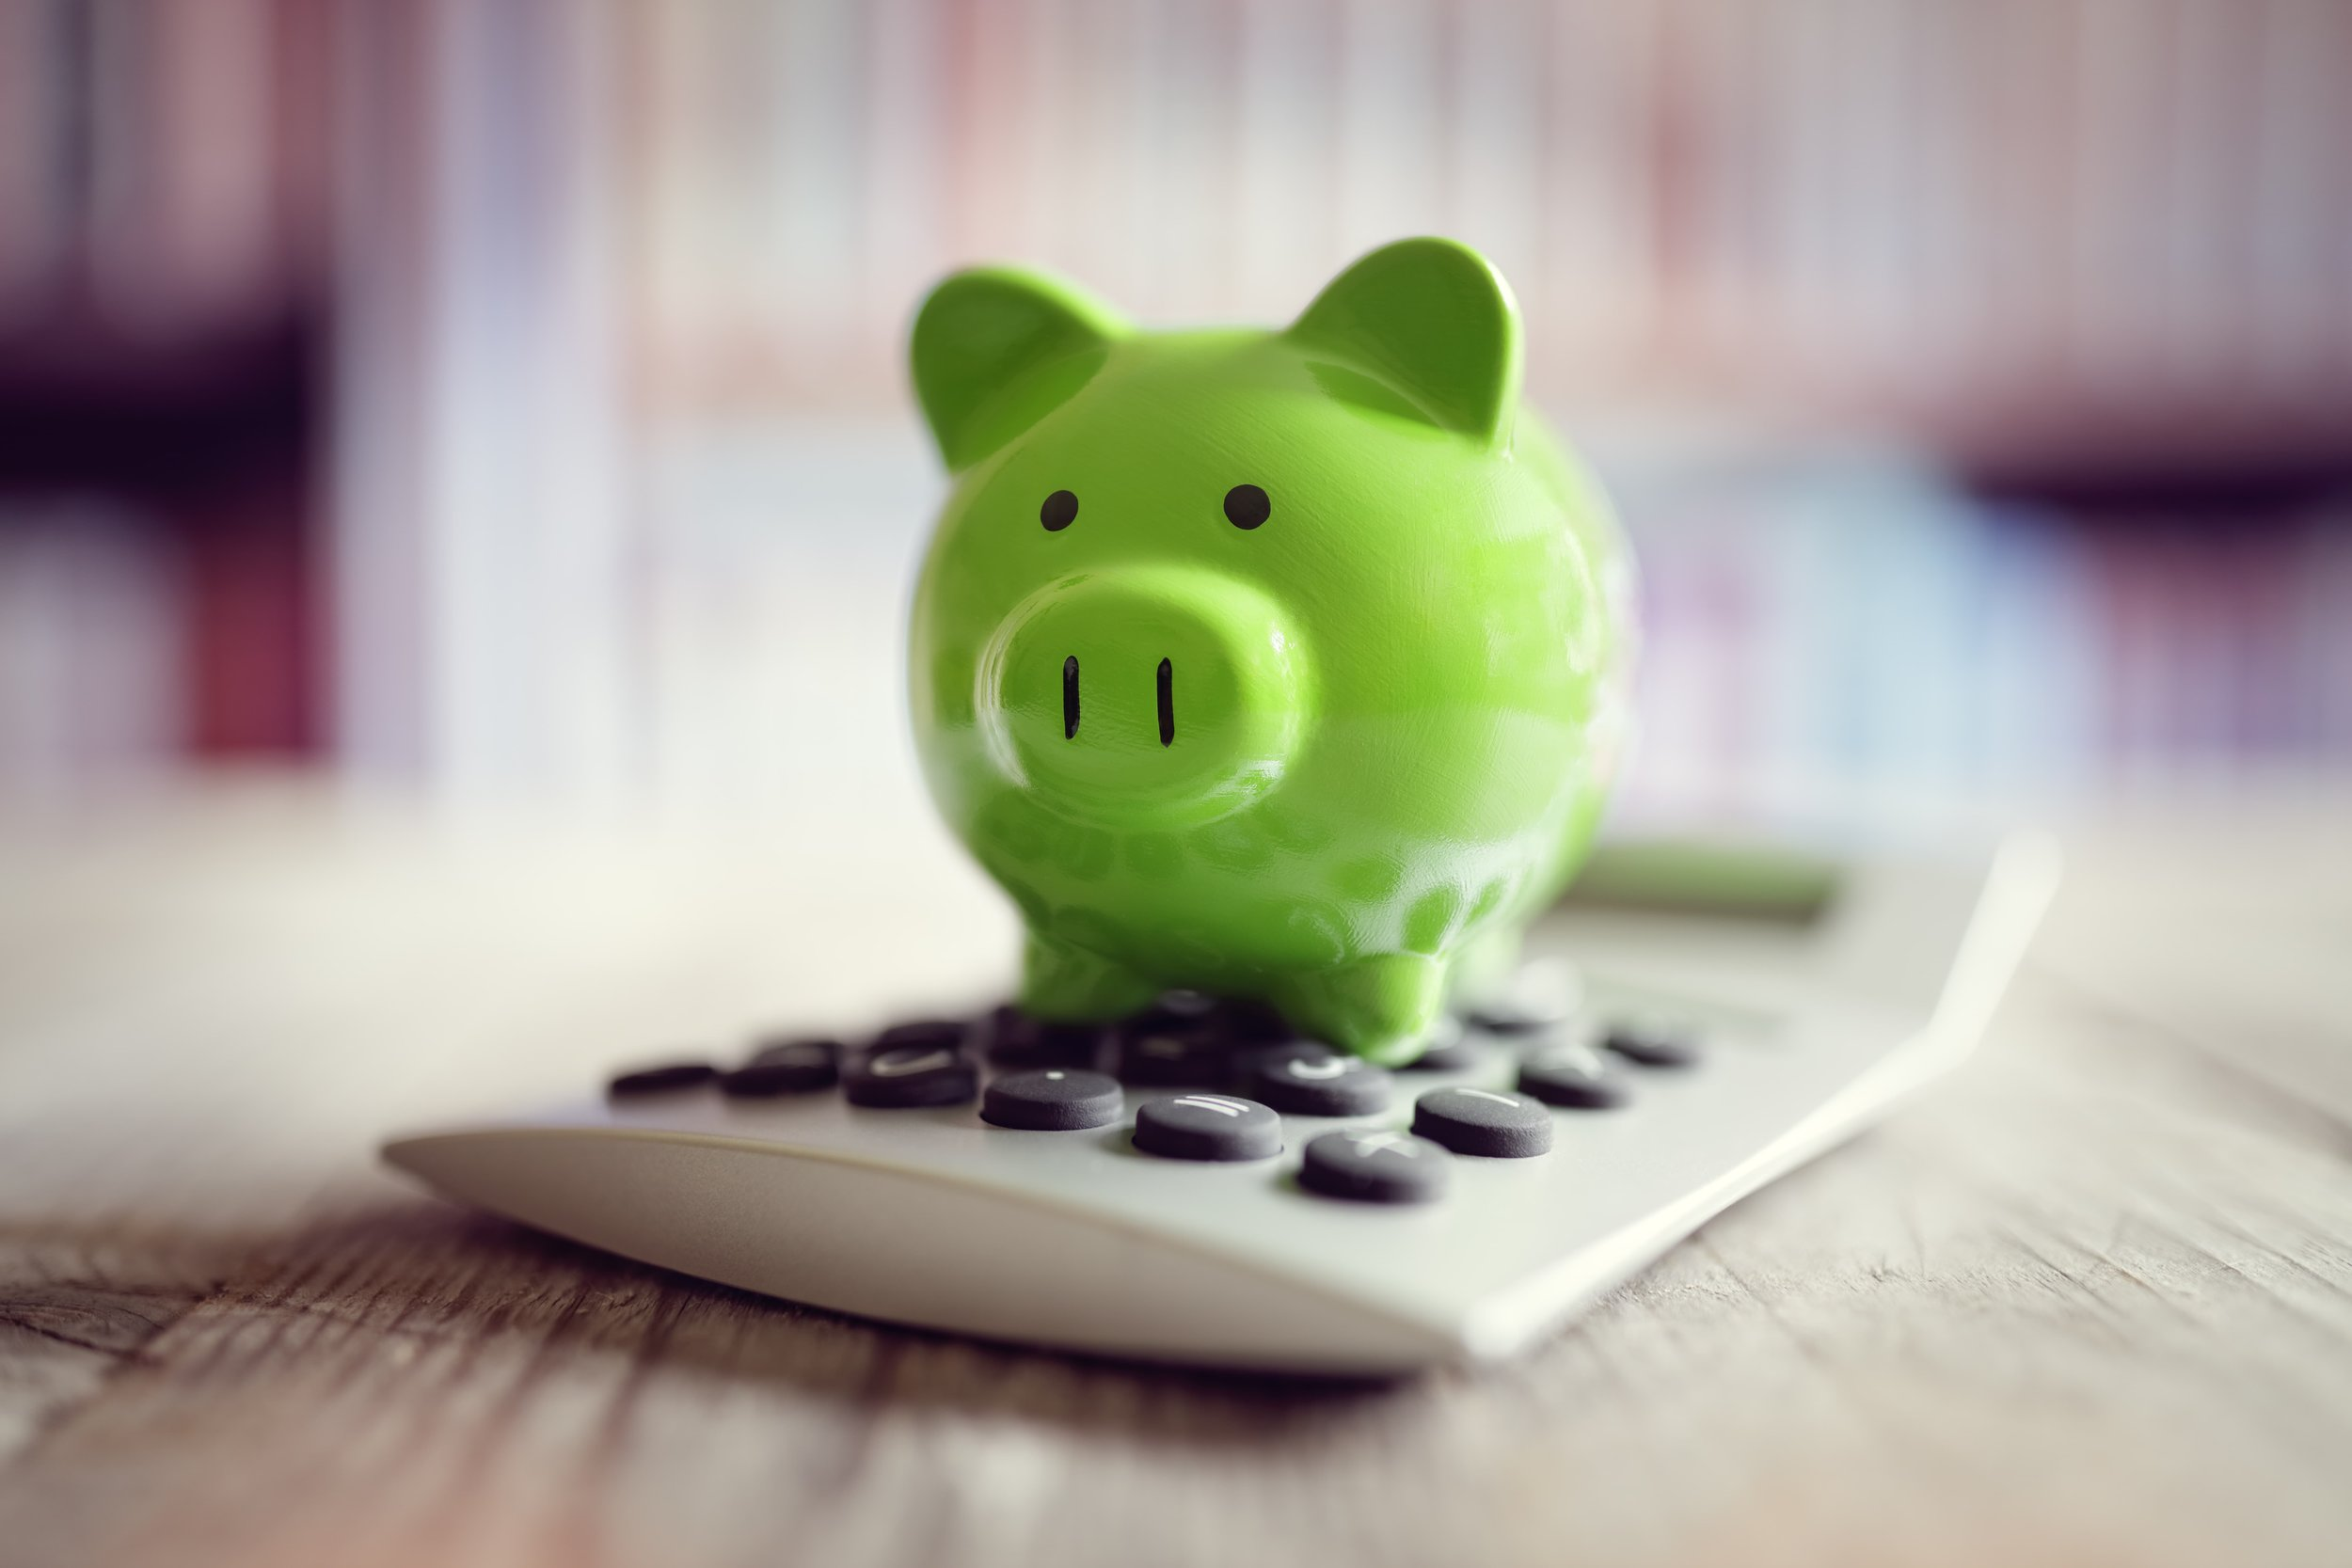 piggy-bank-with-calculator-PFHKPD5.jpg